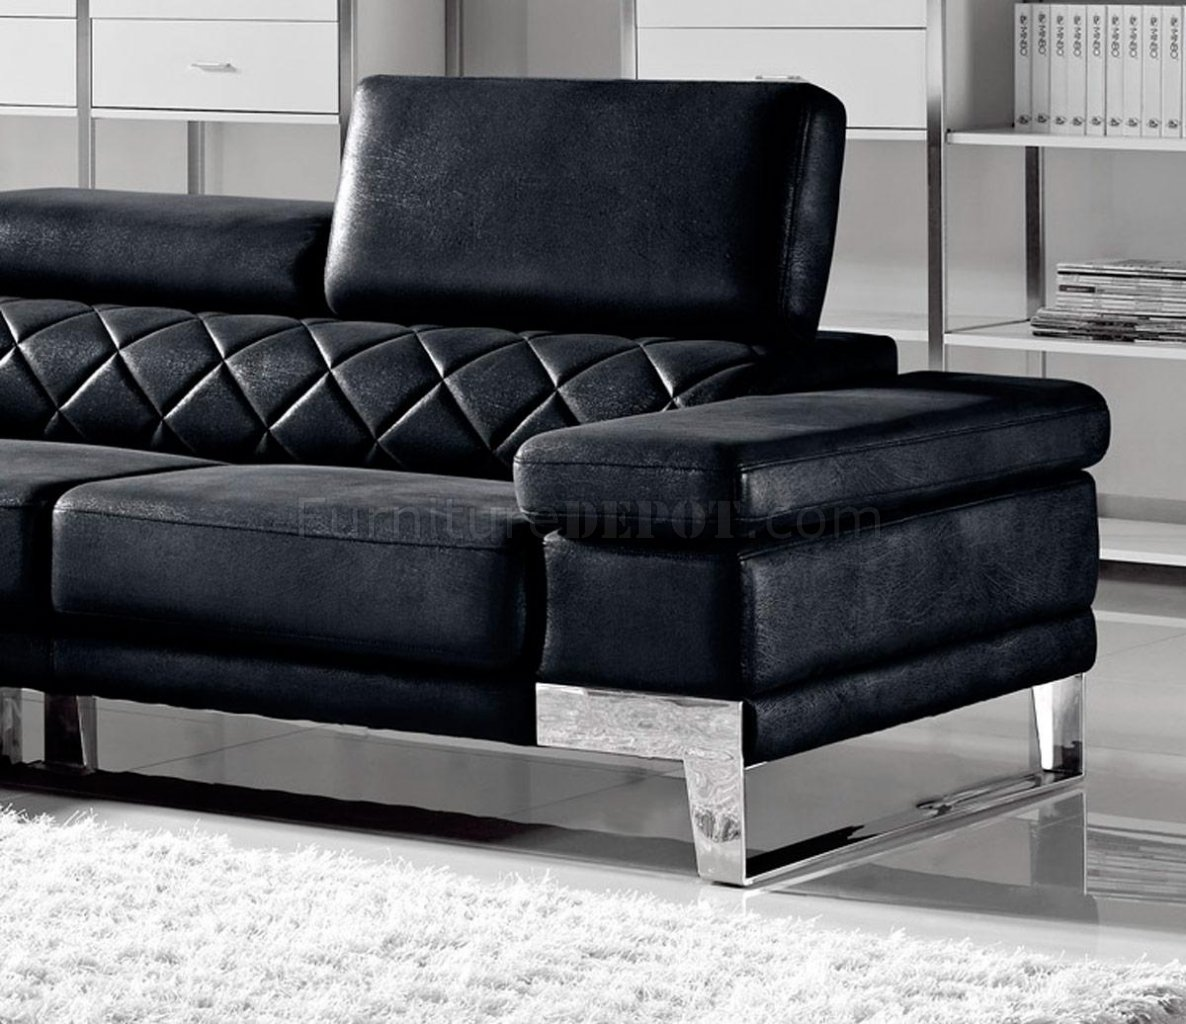 1263 arden sectional sofa in black